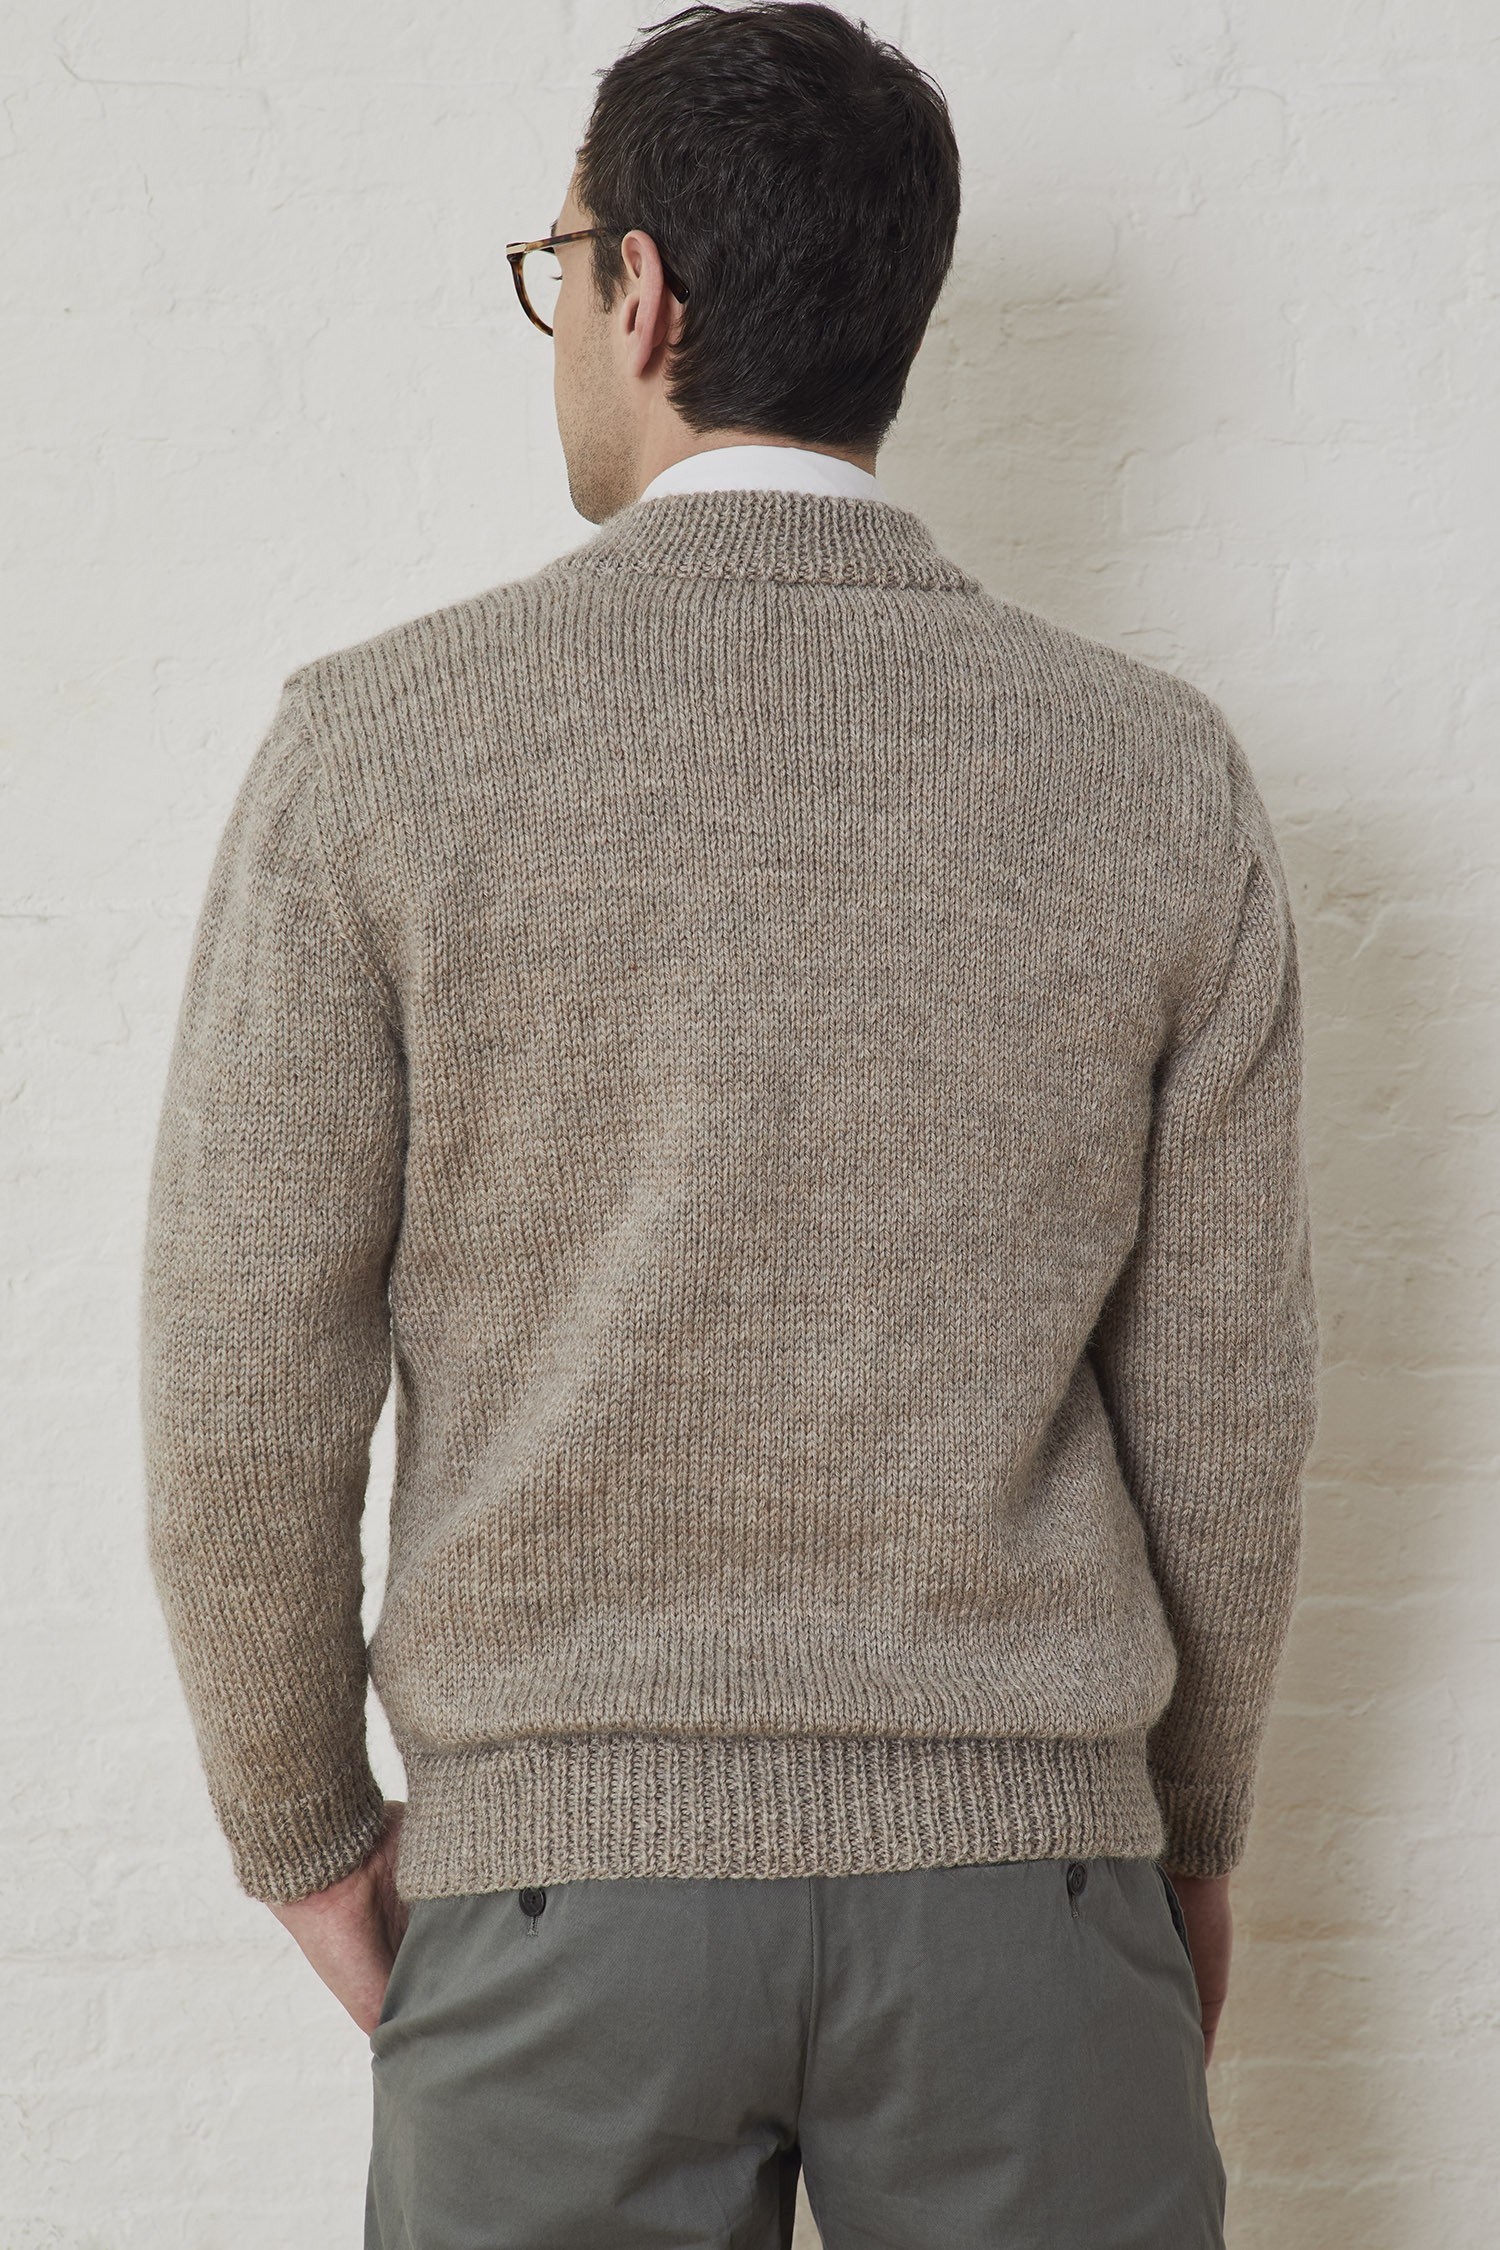 Free Men S Knitting Pattern For A Neighborly Cardigan